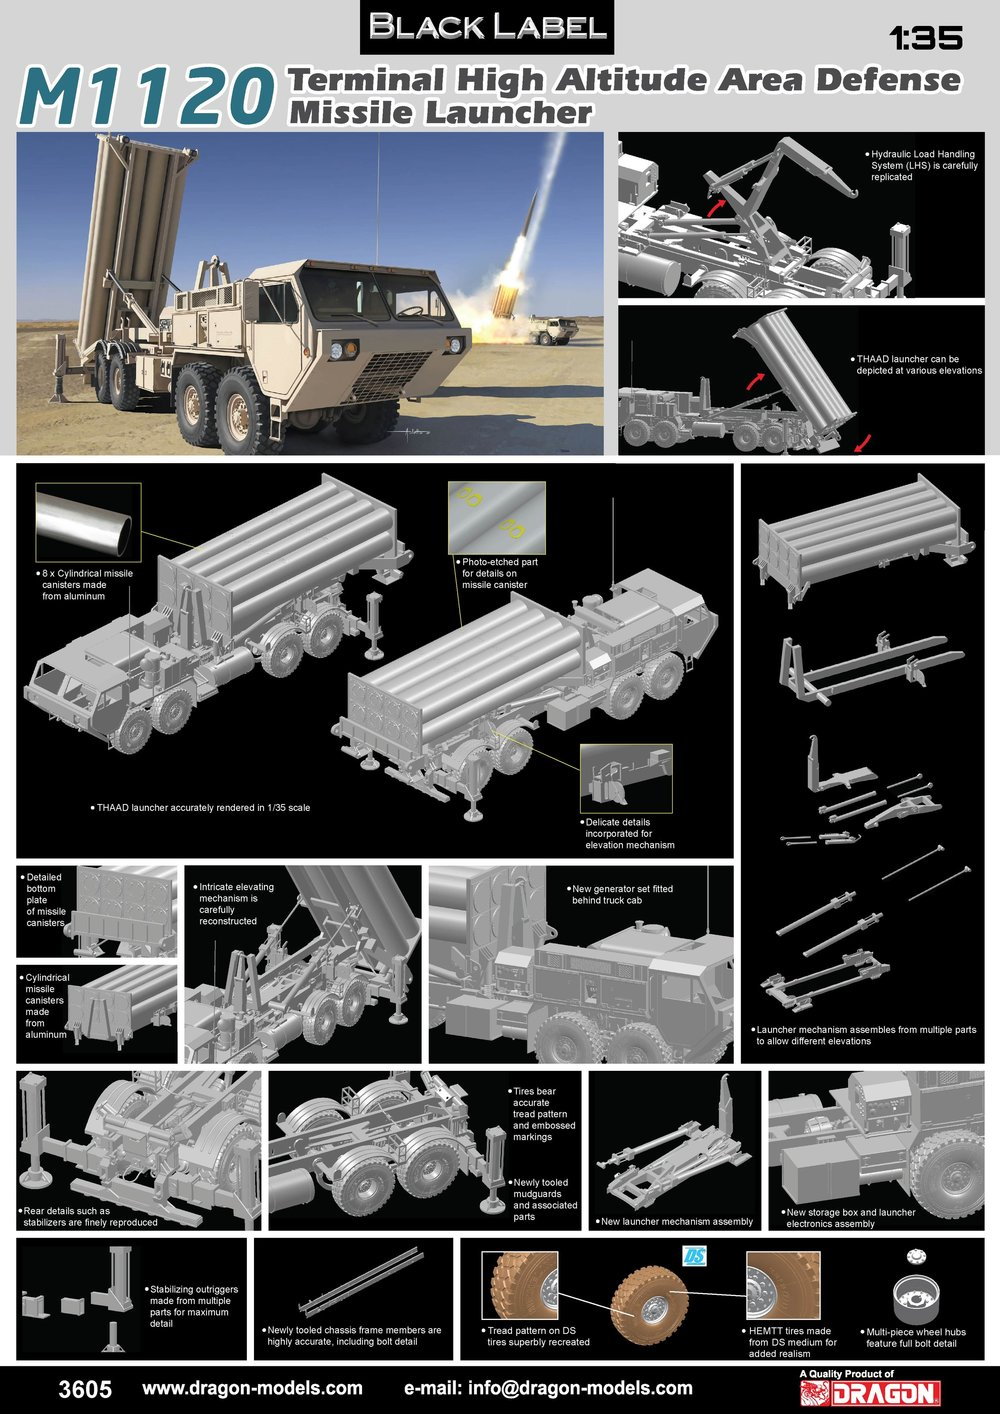 DRAGON (BLACK LABEL) KIT # 3605 1_35 M1120 Terminal High Altitude Area Defense Missile Launcher.jpg